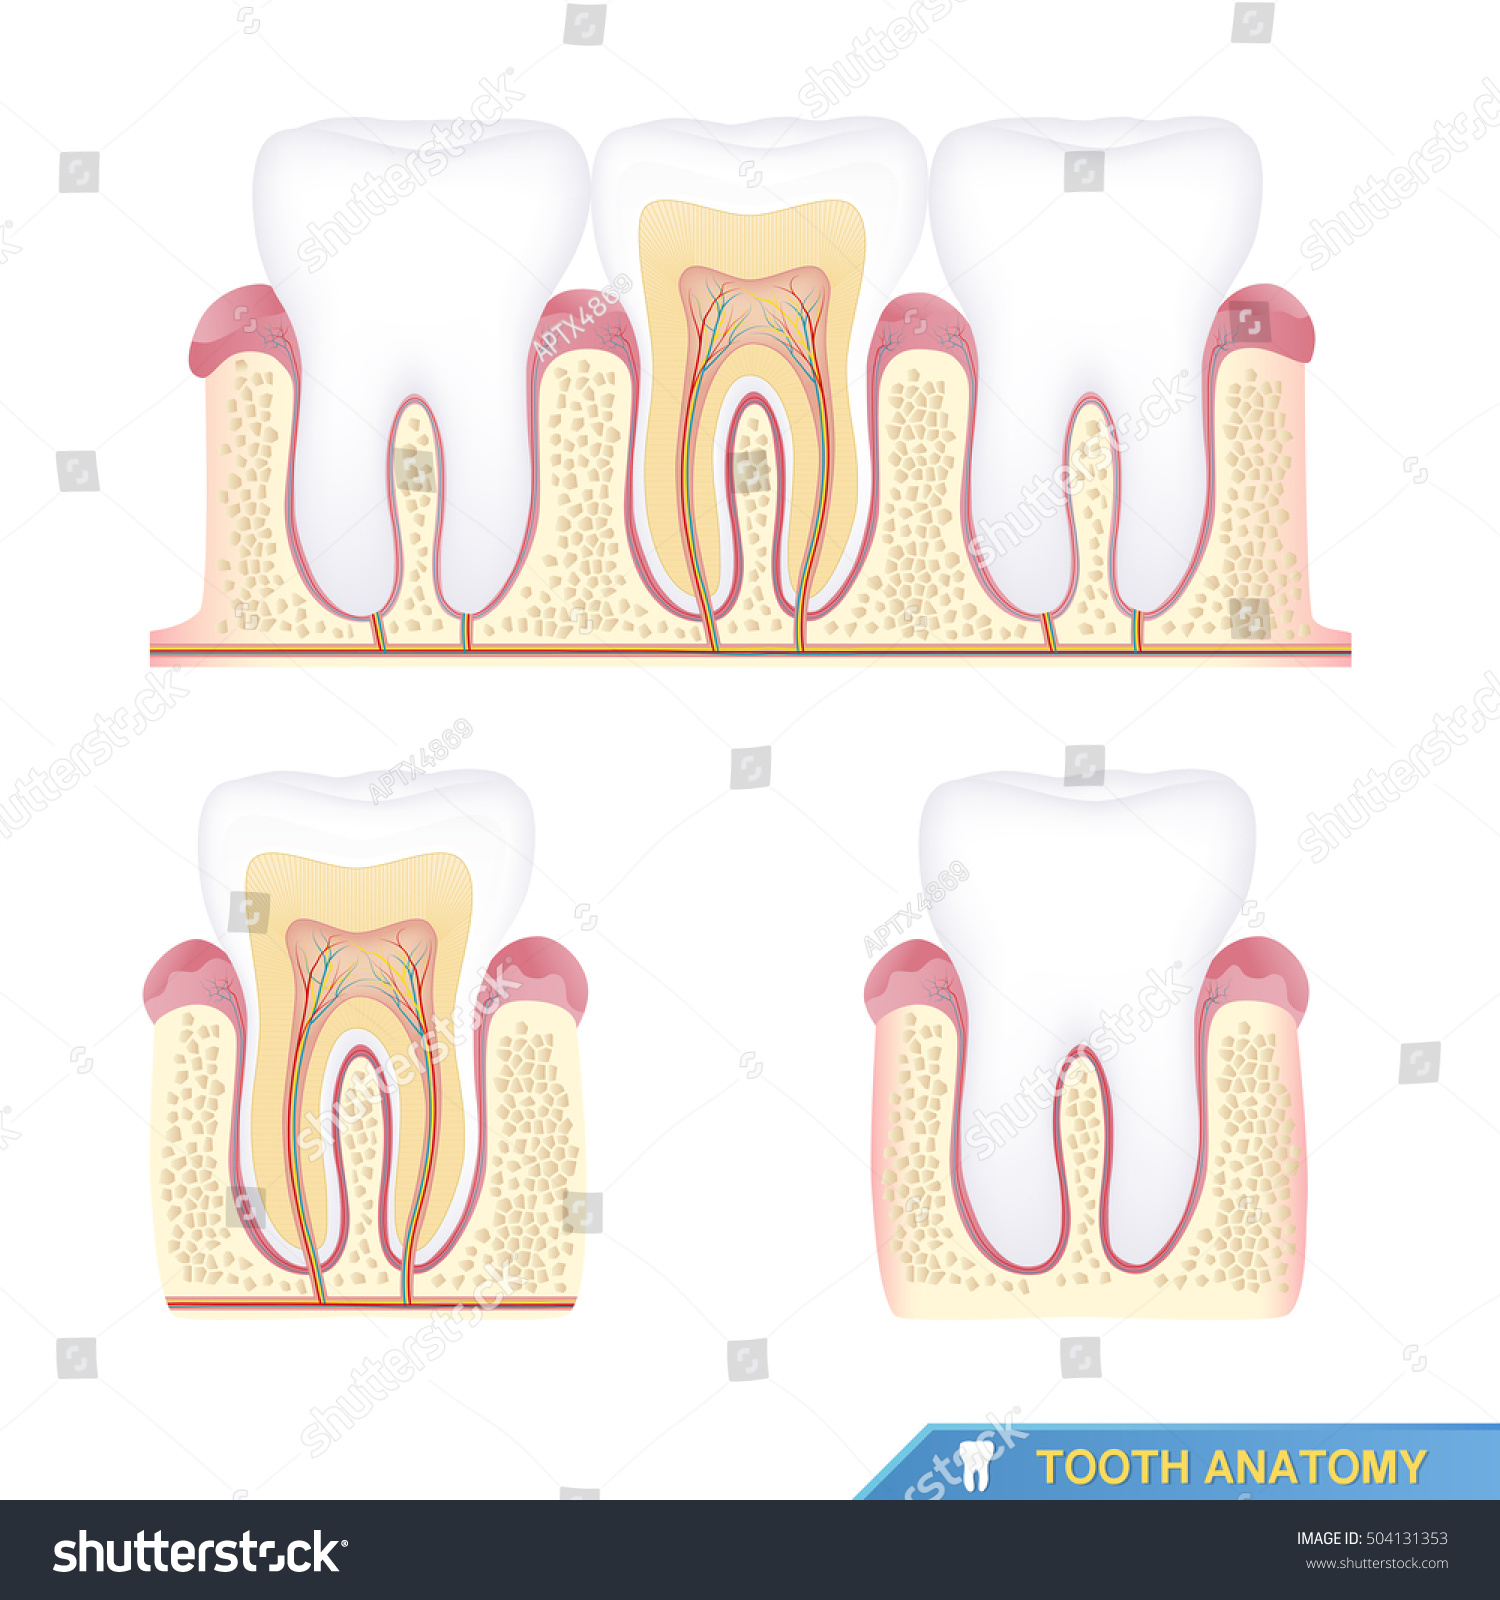 Human Tooth Anatomy Cross Section Stock Vector 504131353 - Shutterstock